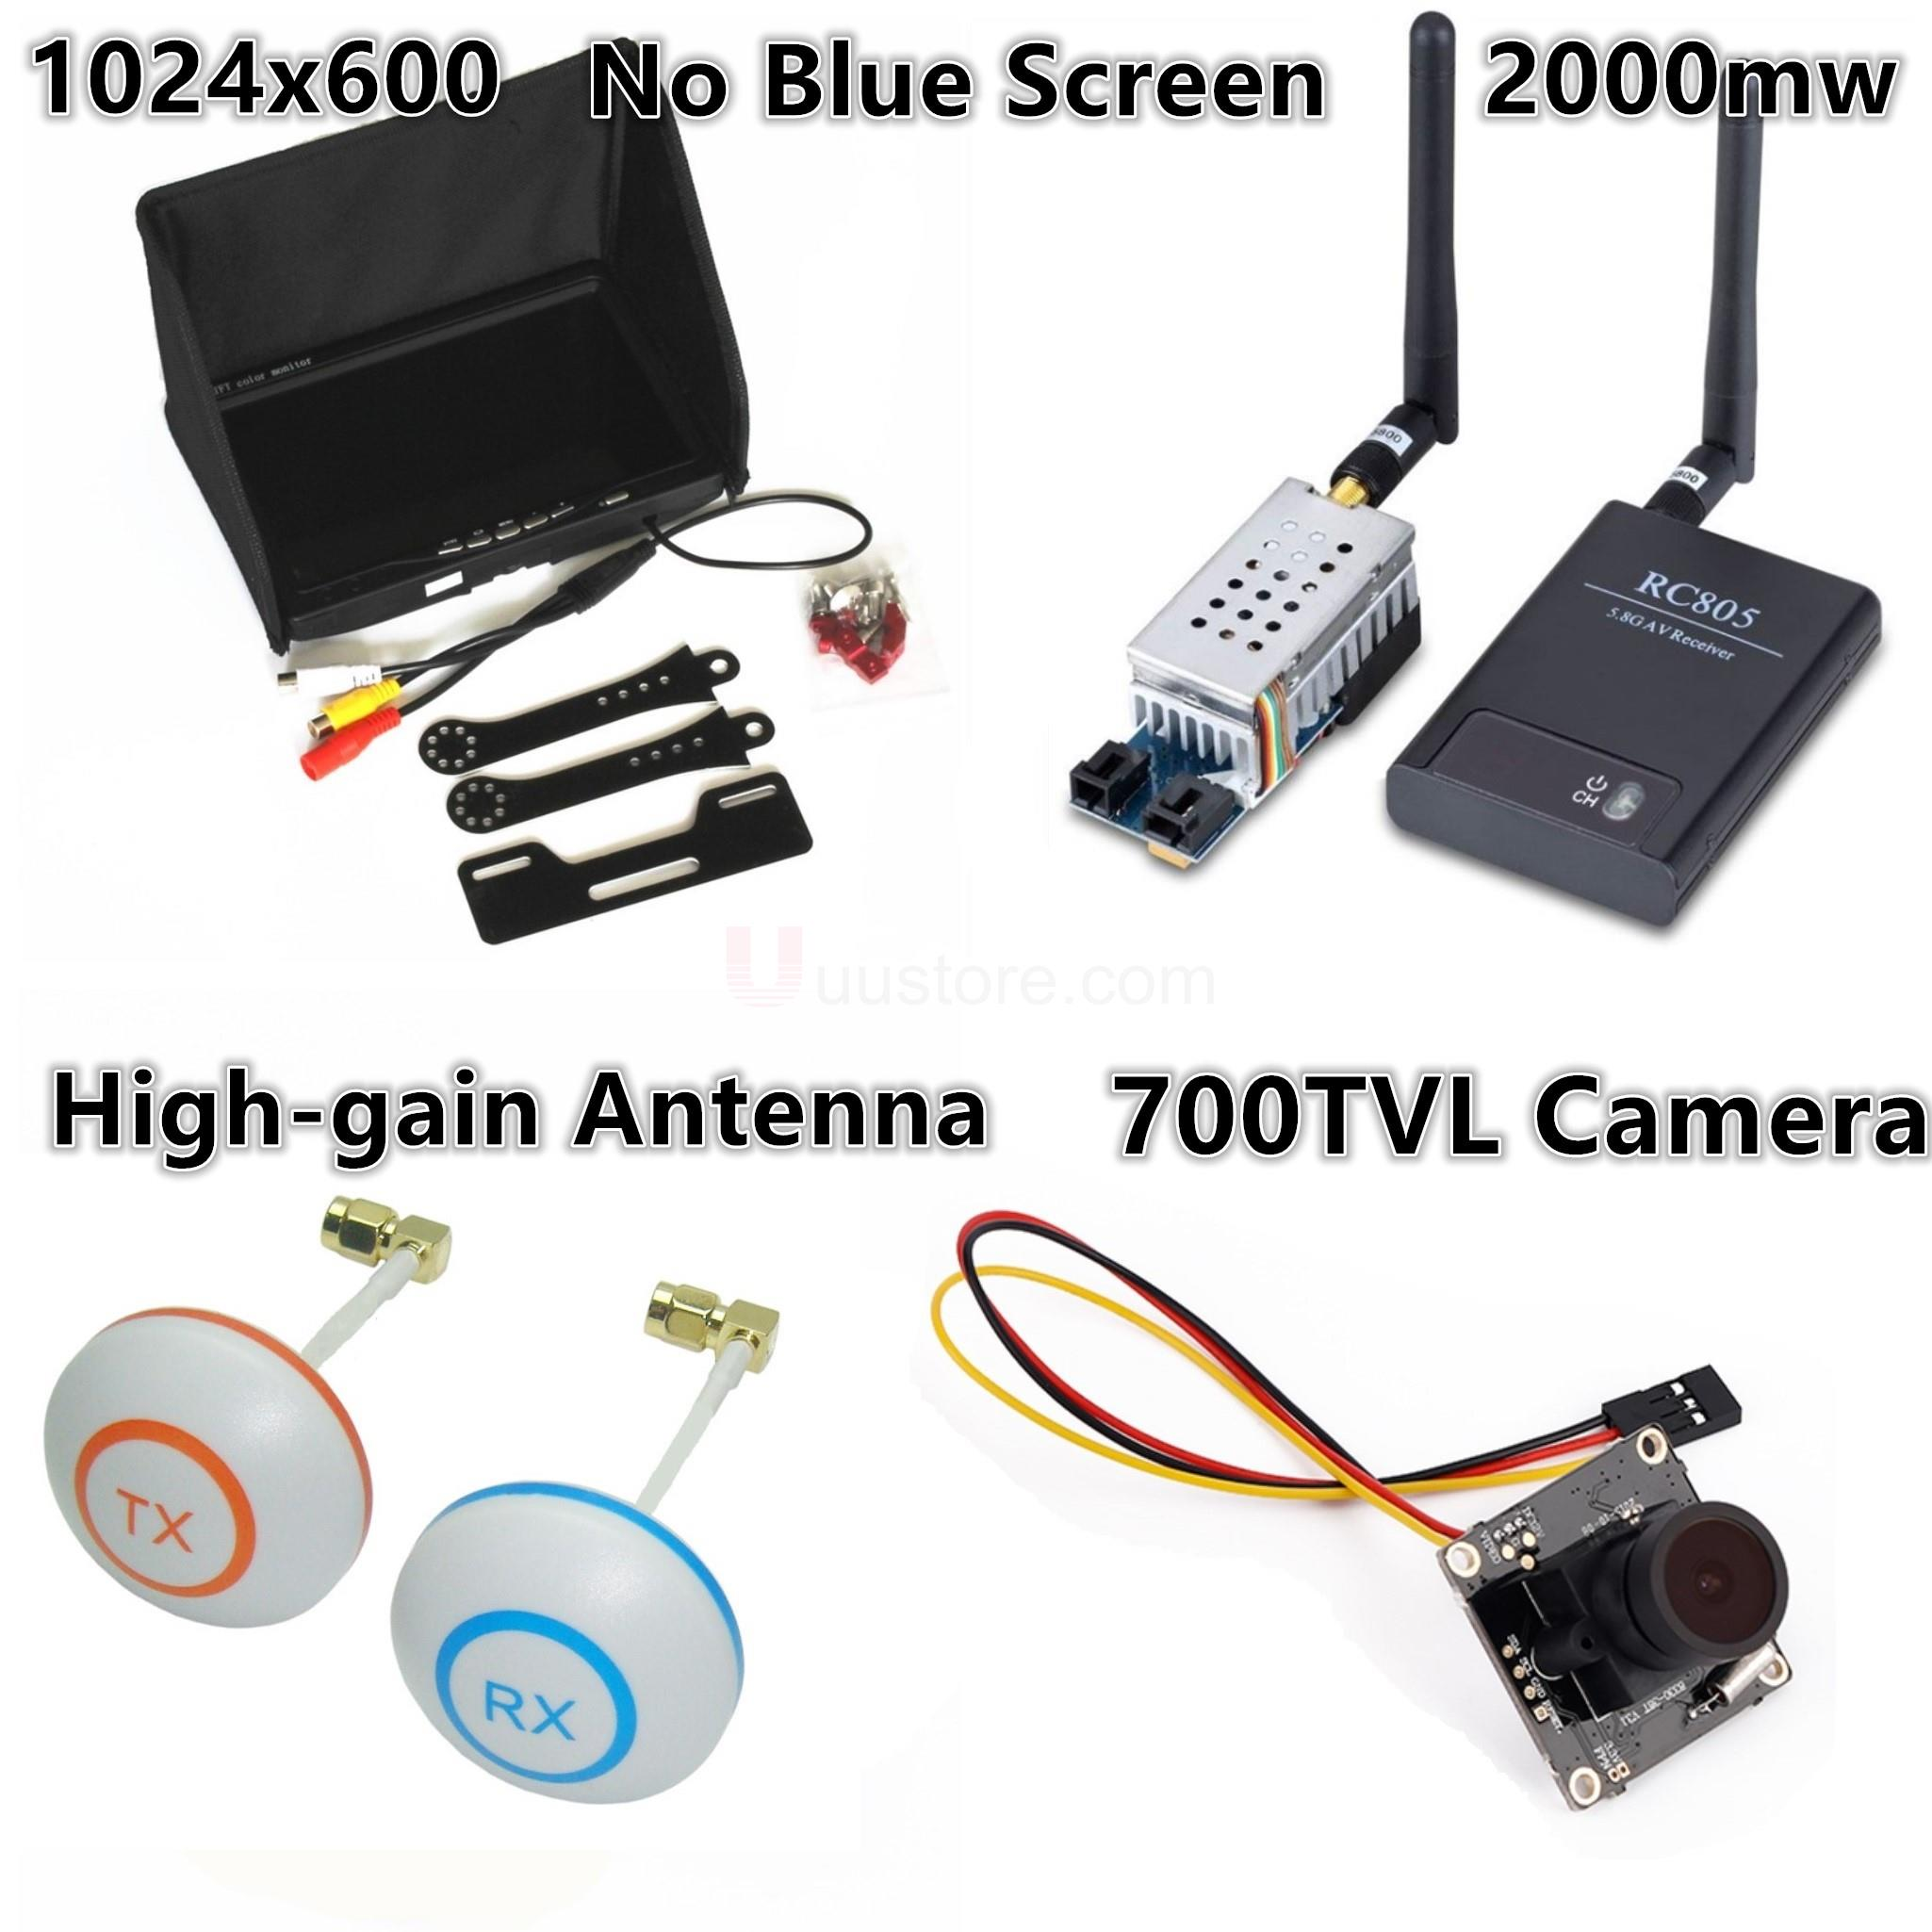 AIO RC FPV Combo System 5.8Ghz 2000mw Transmitter RC805 Receiver 1024x600 Monitor L Antenna 700TVL Camera FPV Quadcopter Drone wireless audio video system 5 8ghz fpv 600mw transmitter 48ch receiver 800x480 monitor 800tvl camera remote control toys